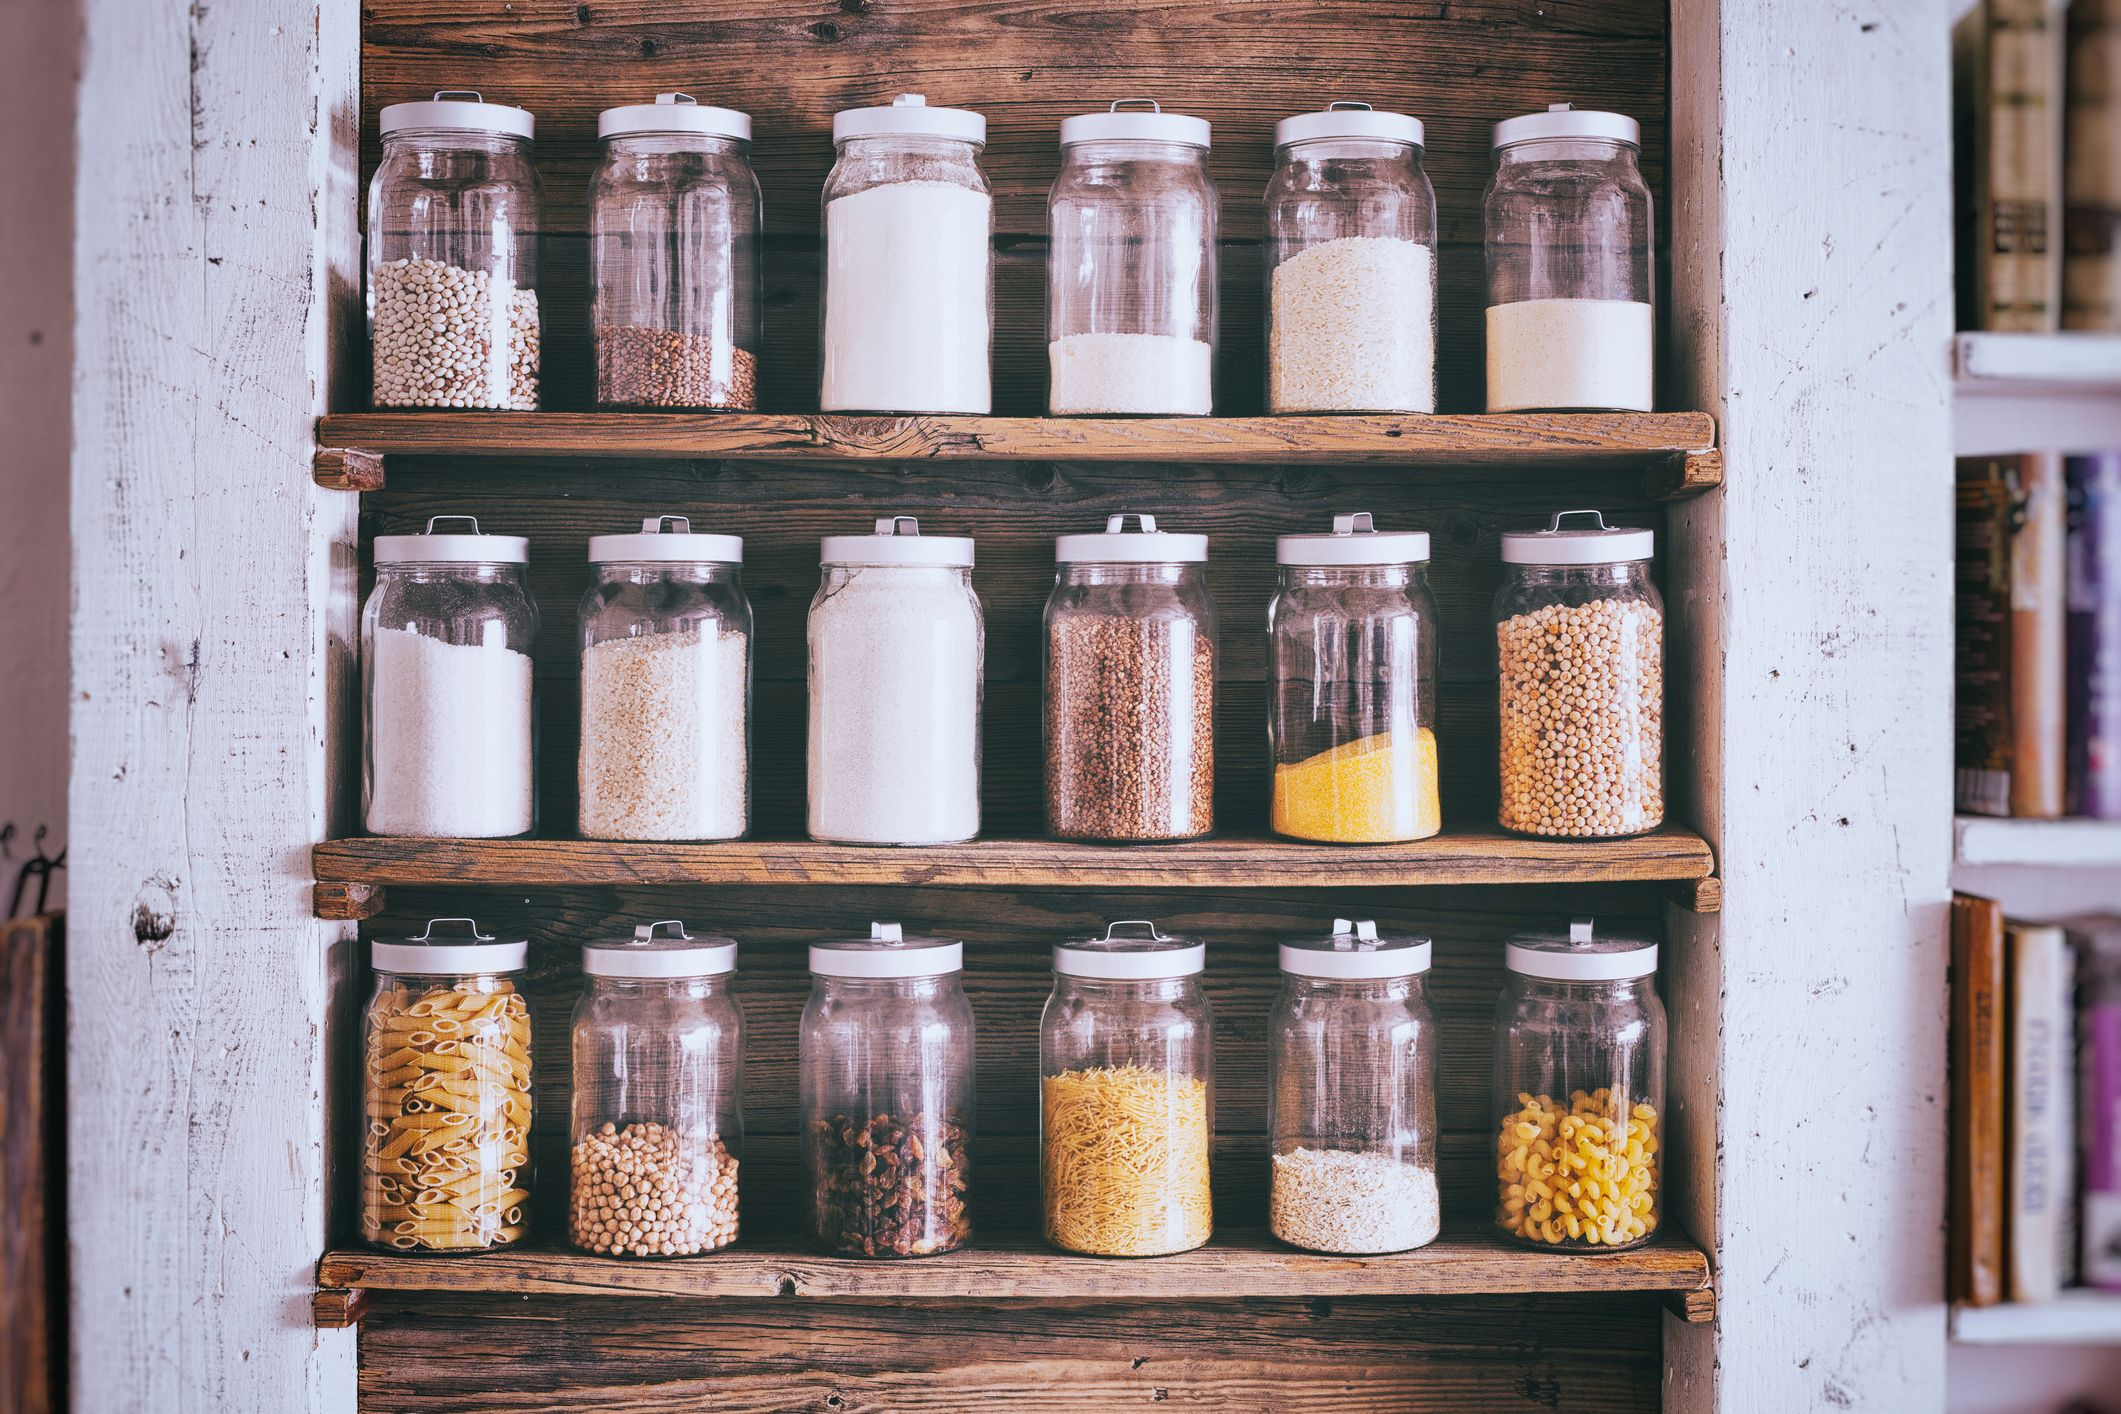 20 Genius Kitchen Pantry Organization Ideas   How To Organize Your Pantry    Delish.com